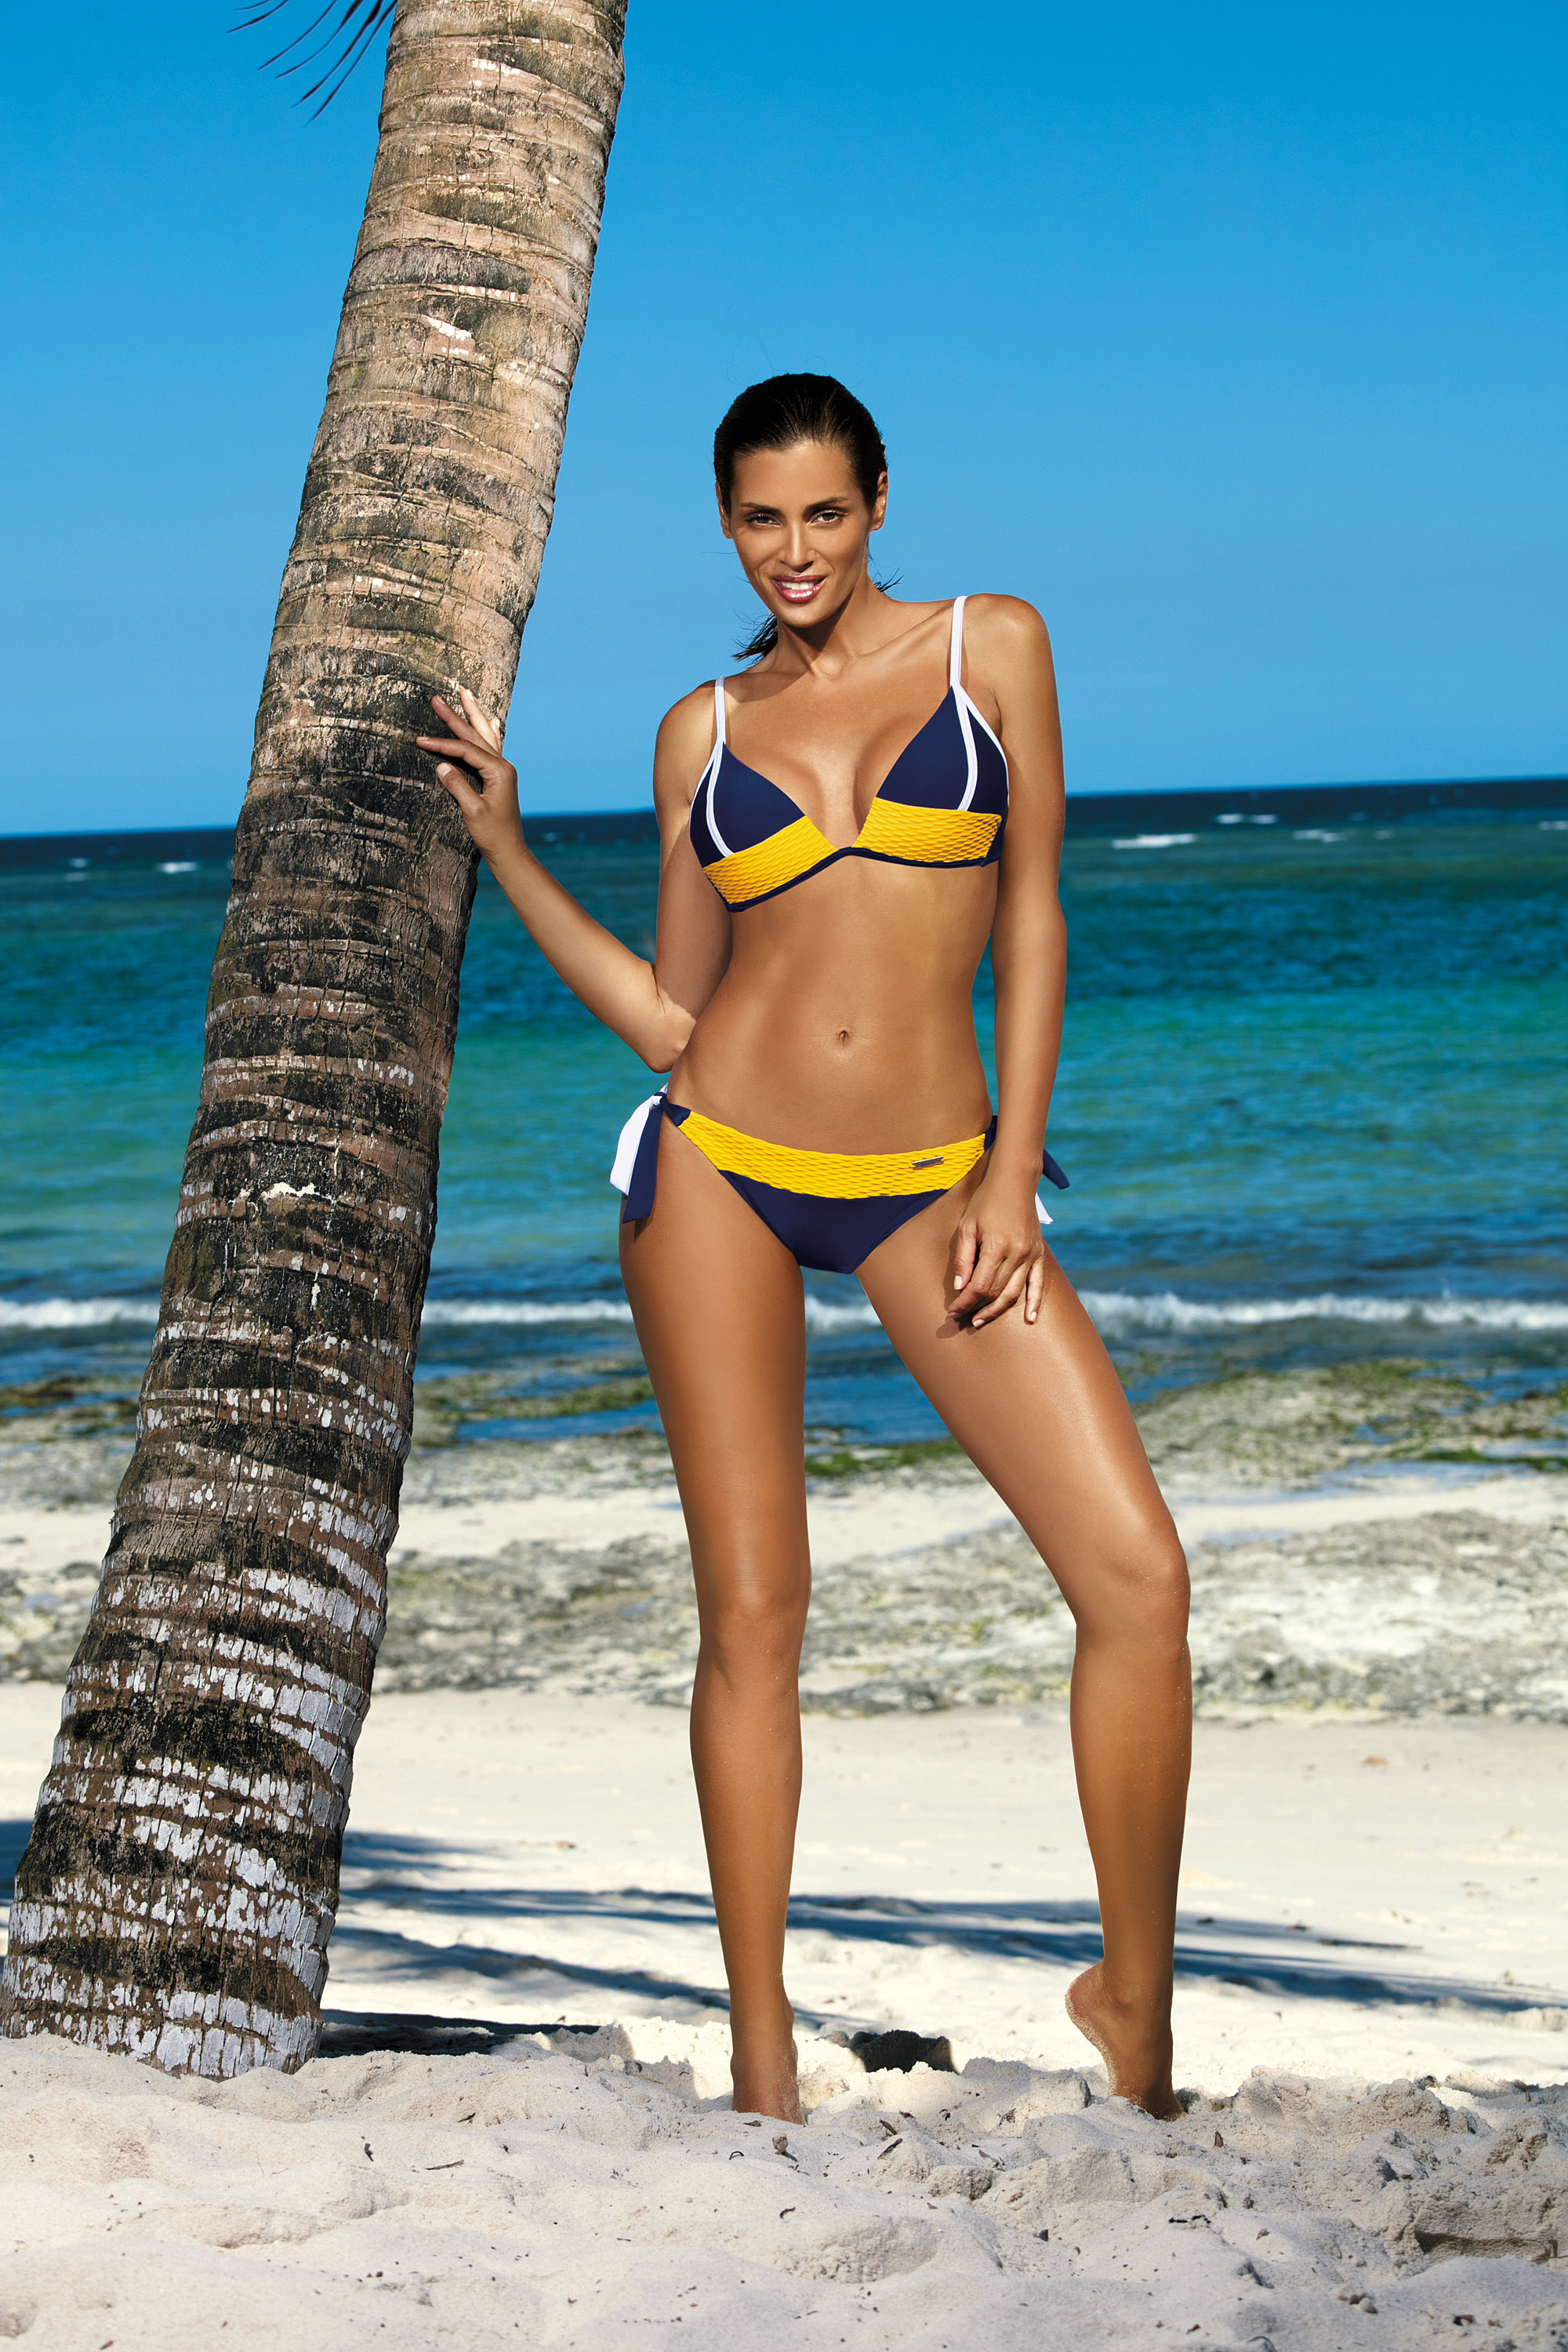 Darkblue swimsuit from two pieces with classic bottoms triangle bra